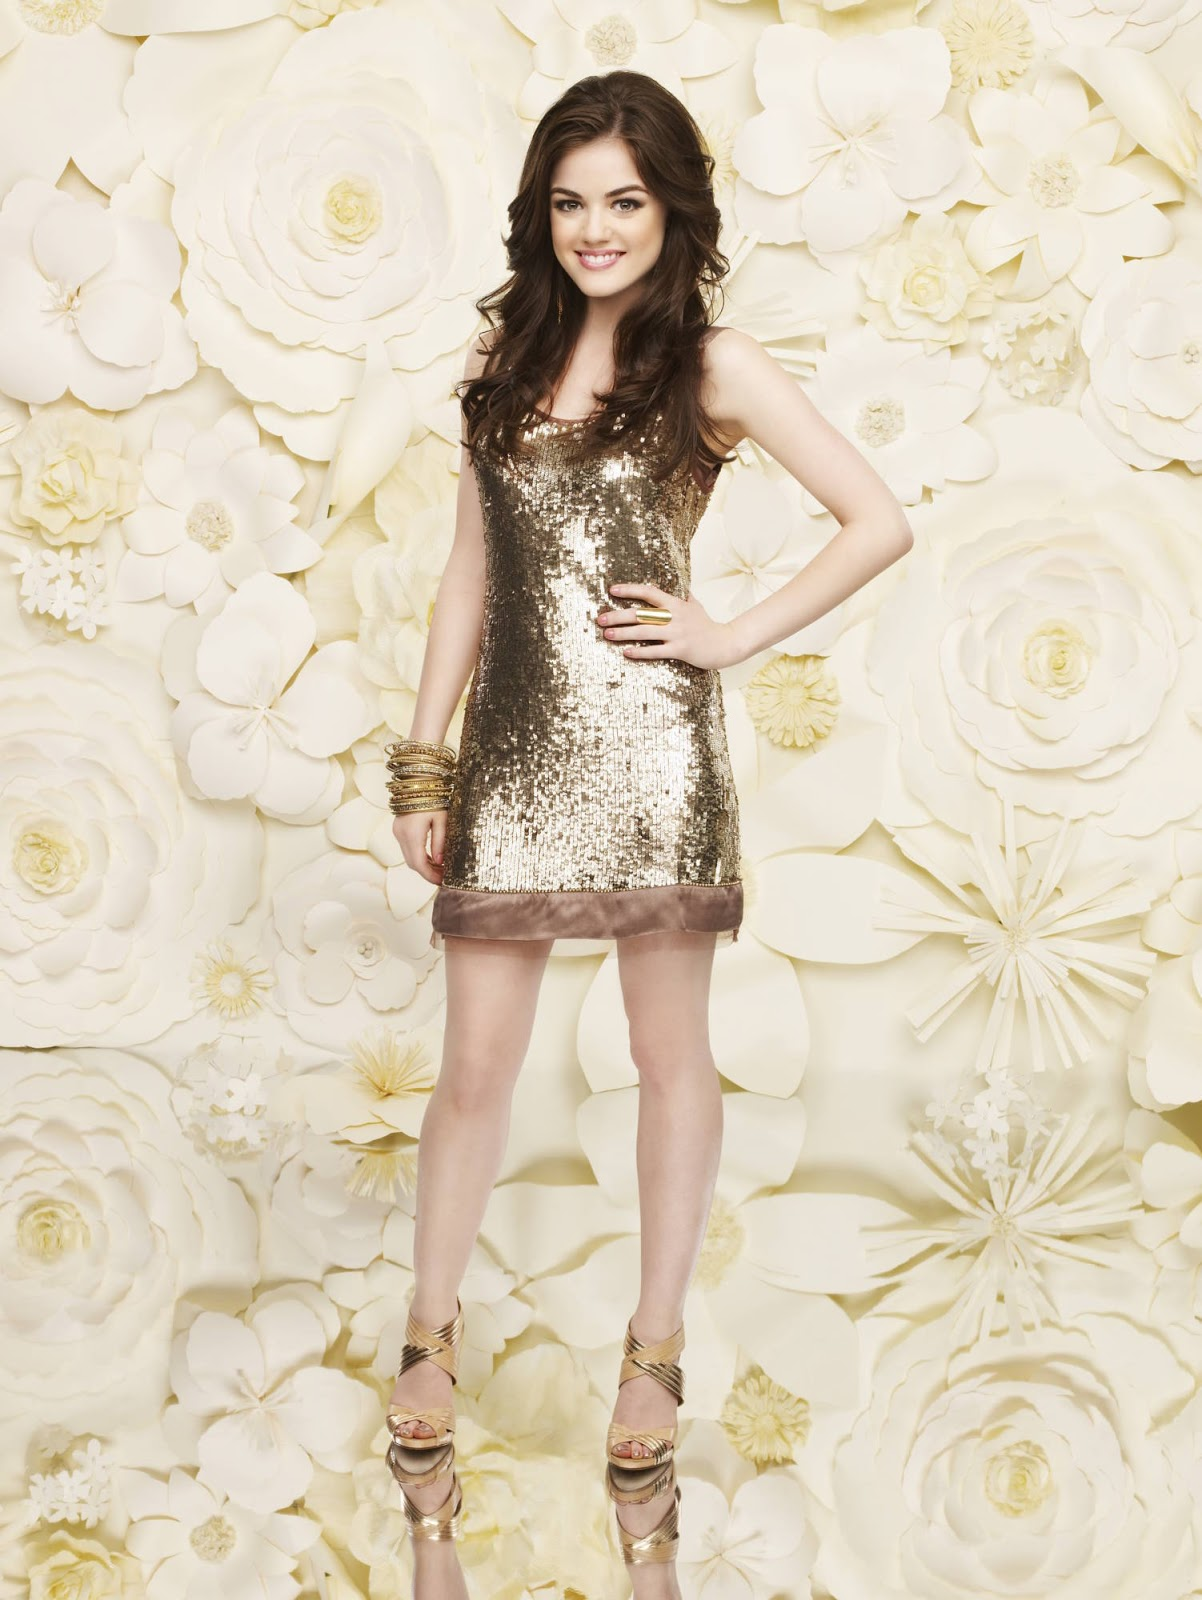 Cynng: Aria Montgomery - Lucy Hale